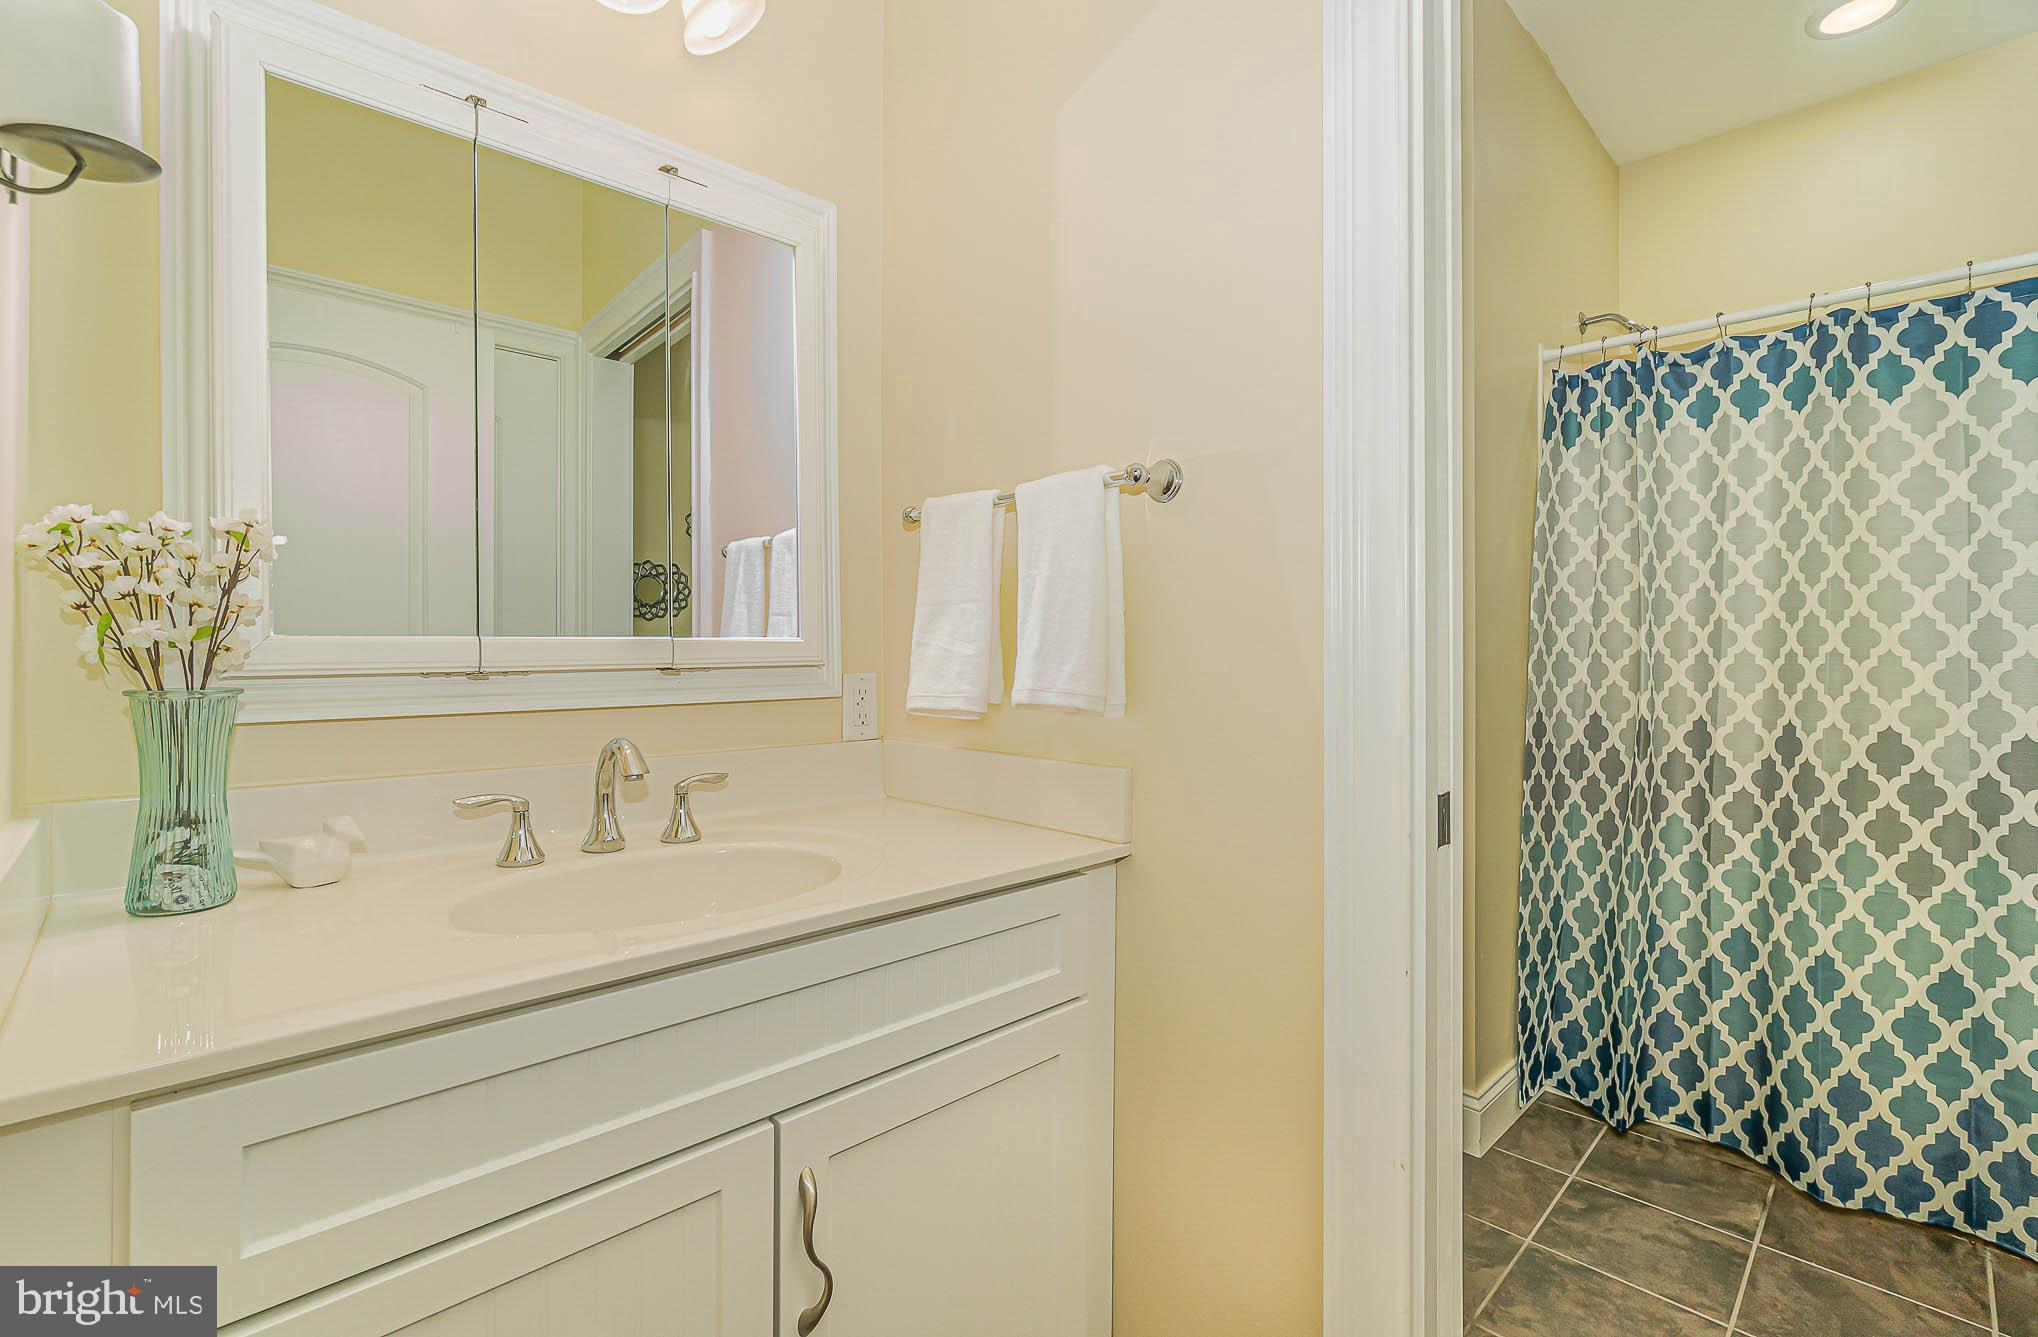 LL -Full bath conveniently located for pool guests